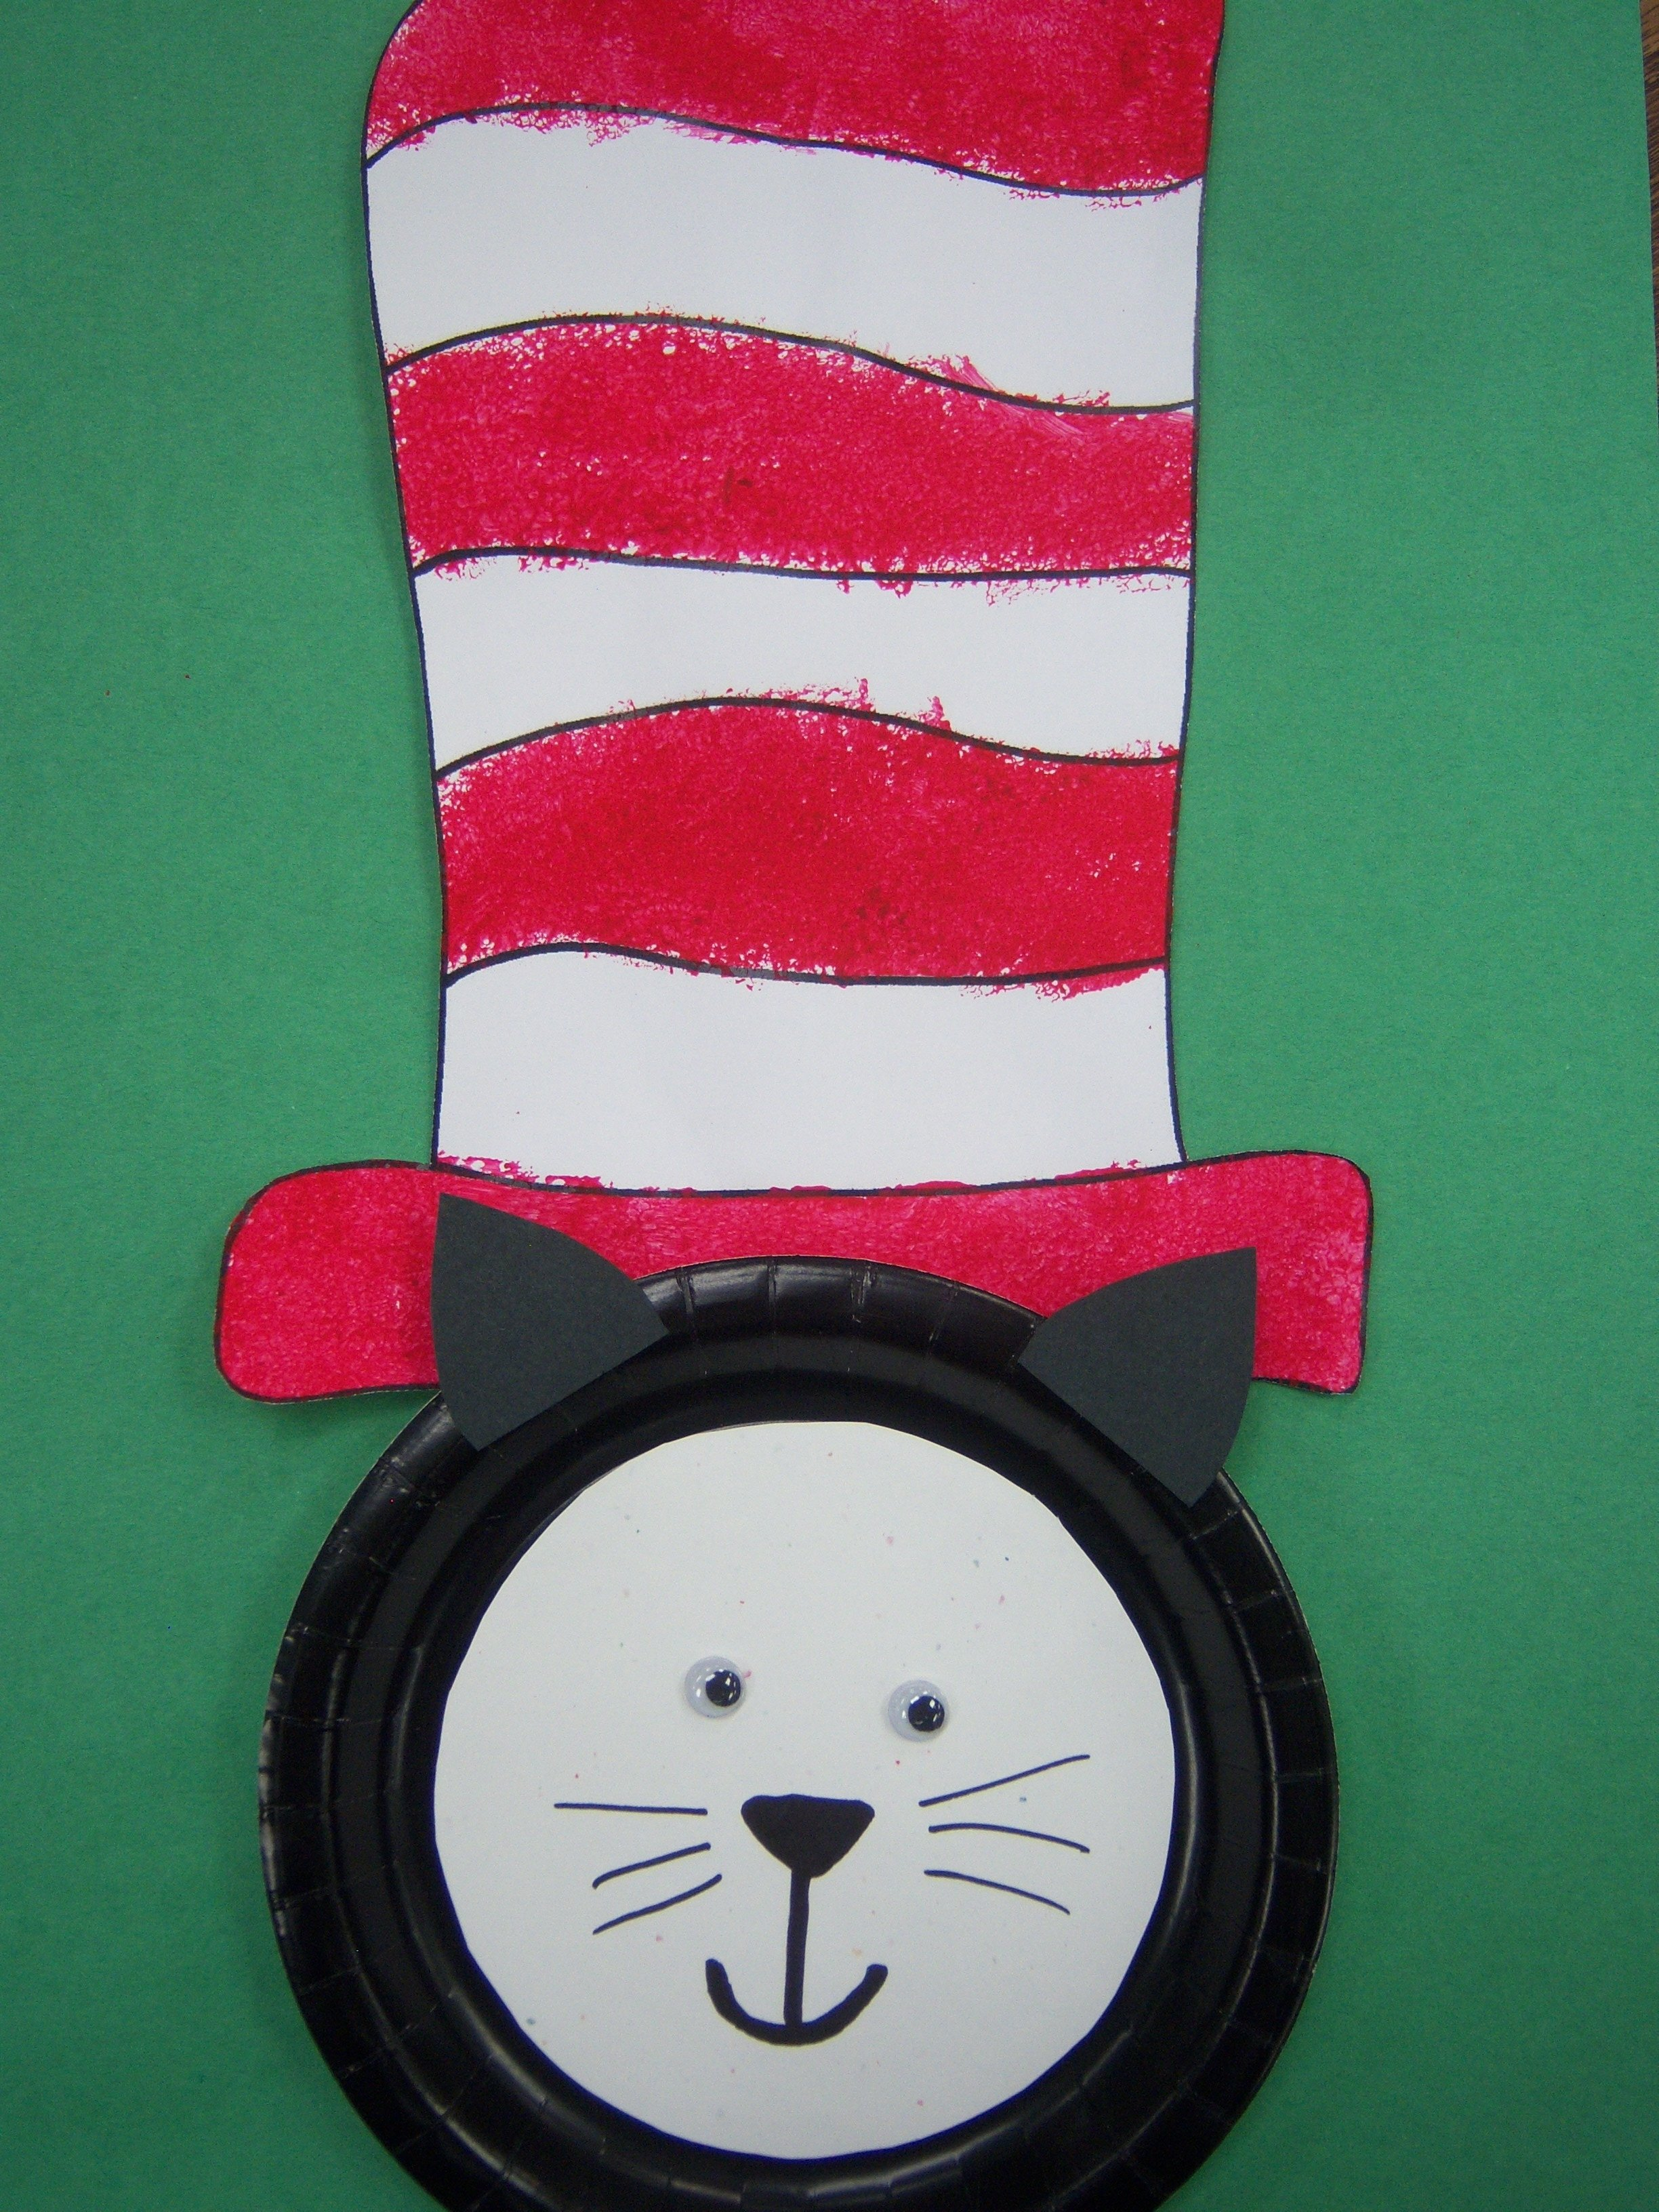 10 Most Popular Cat In The Hat Craft Ideas kids art dr seuss storytime katie